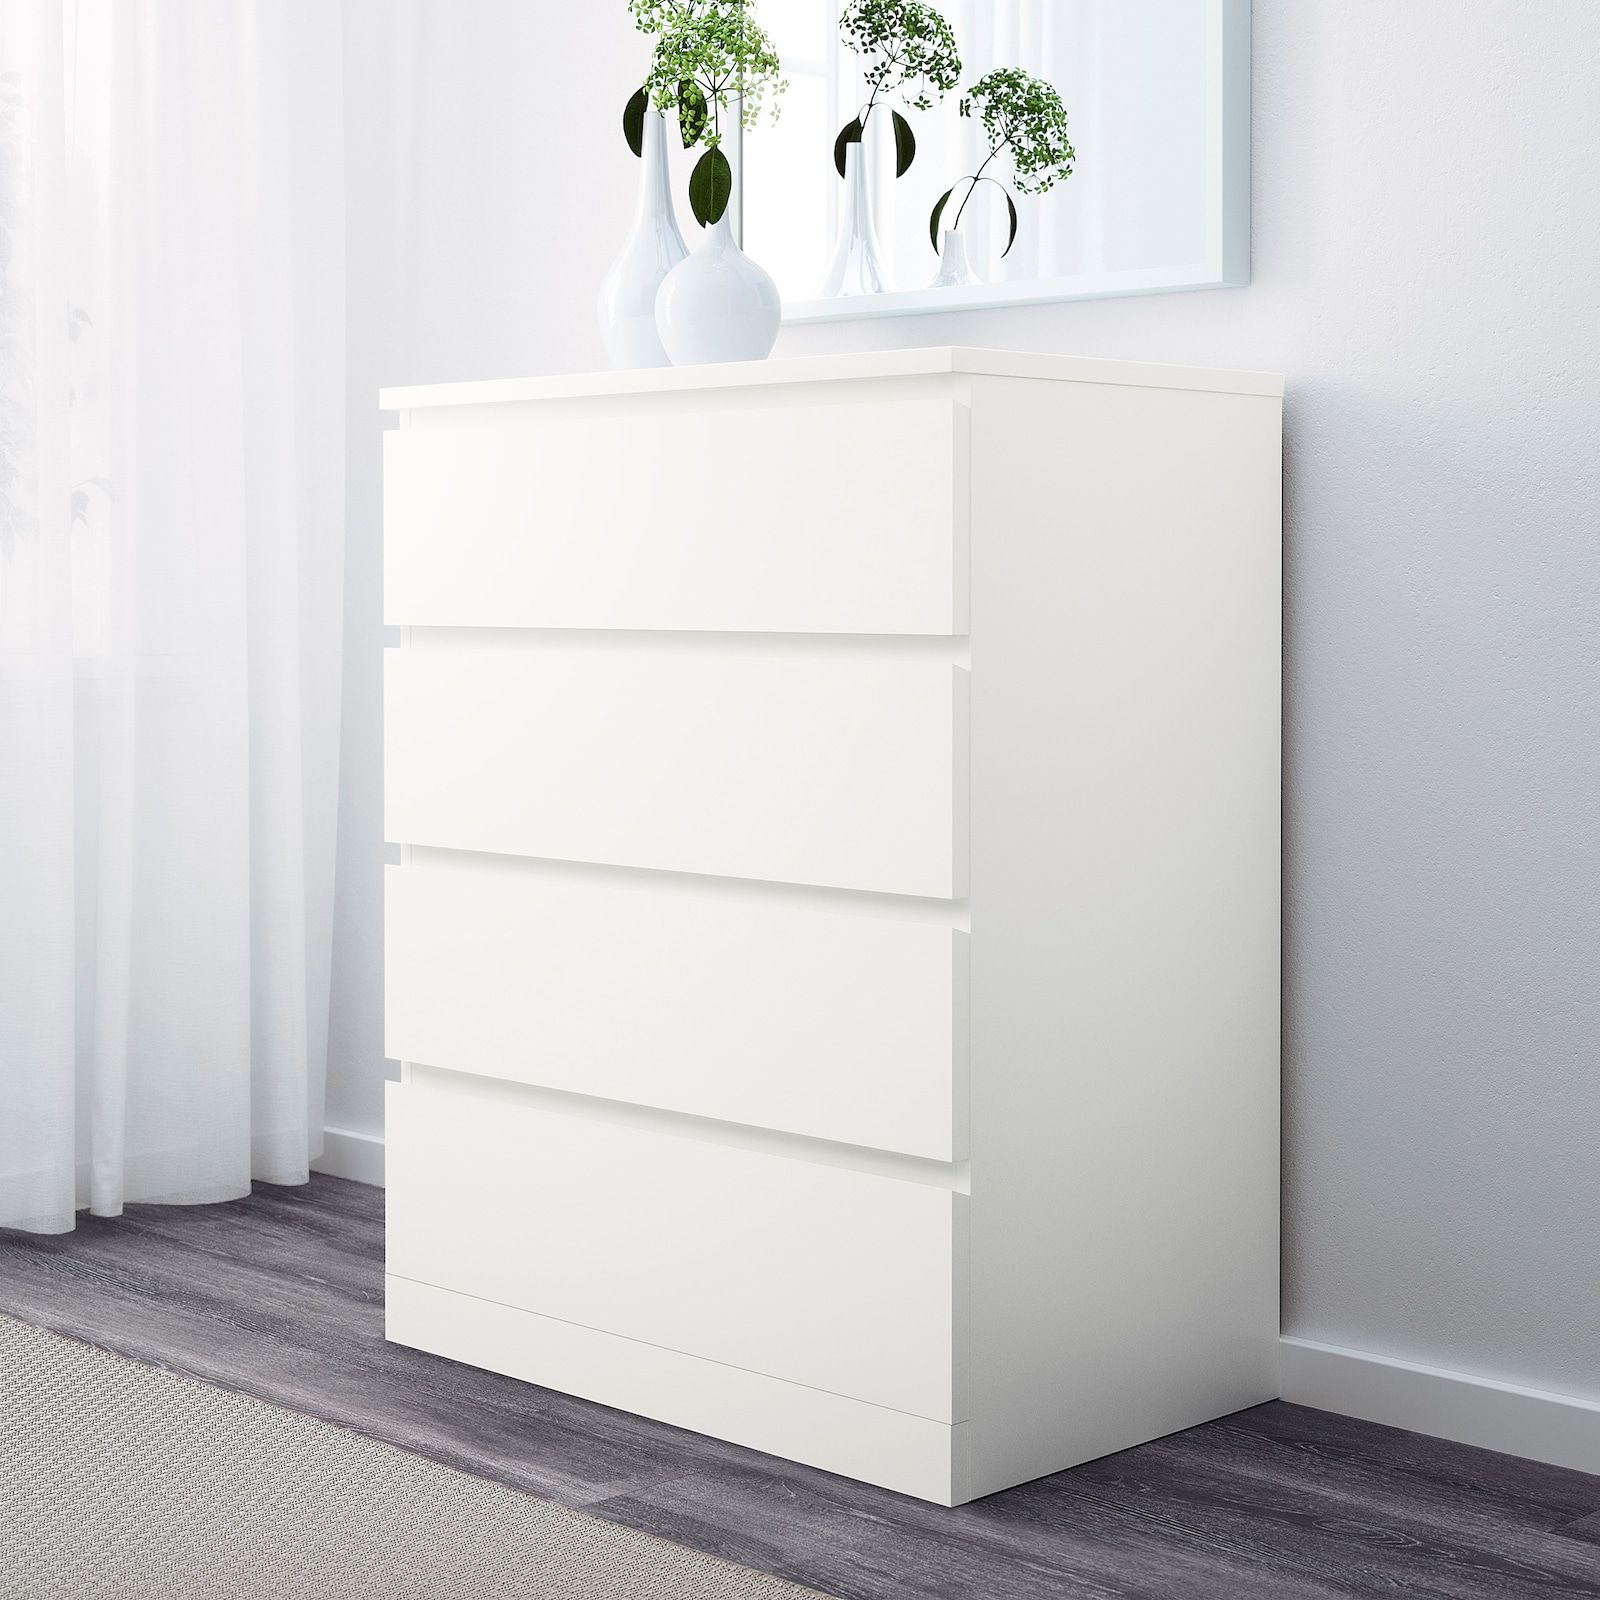 Malm 4 Drawer Chest White 31 1 2x39 3 8 Ikea In 2020 Ikea